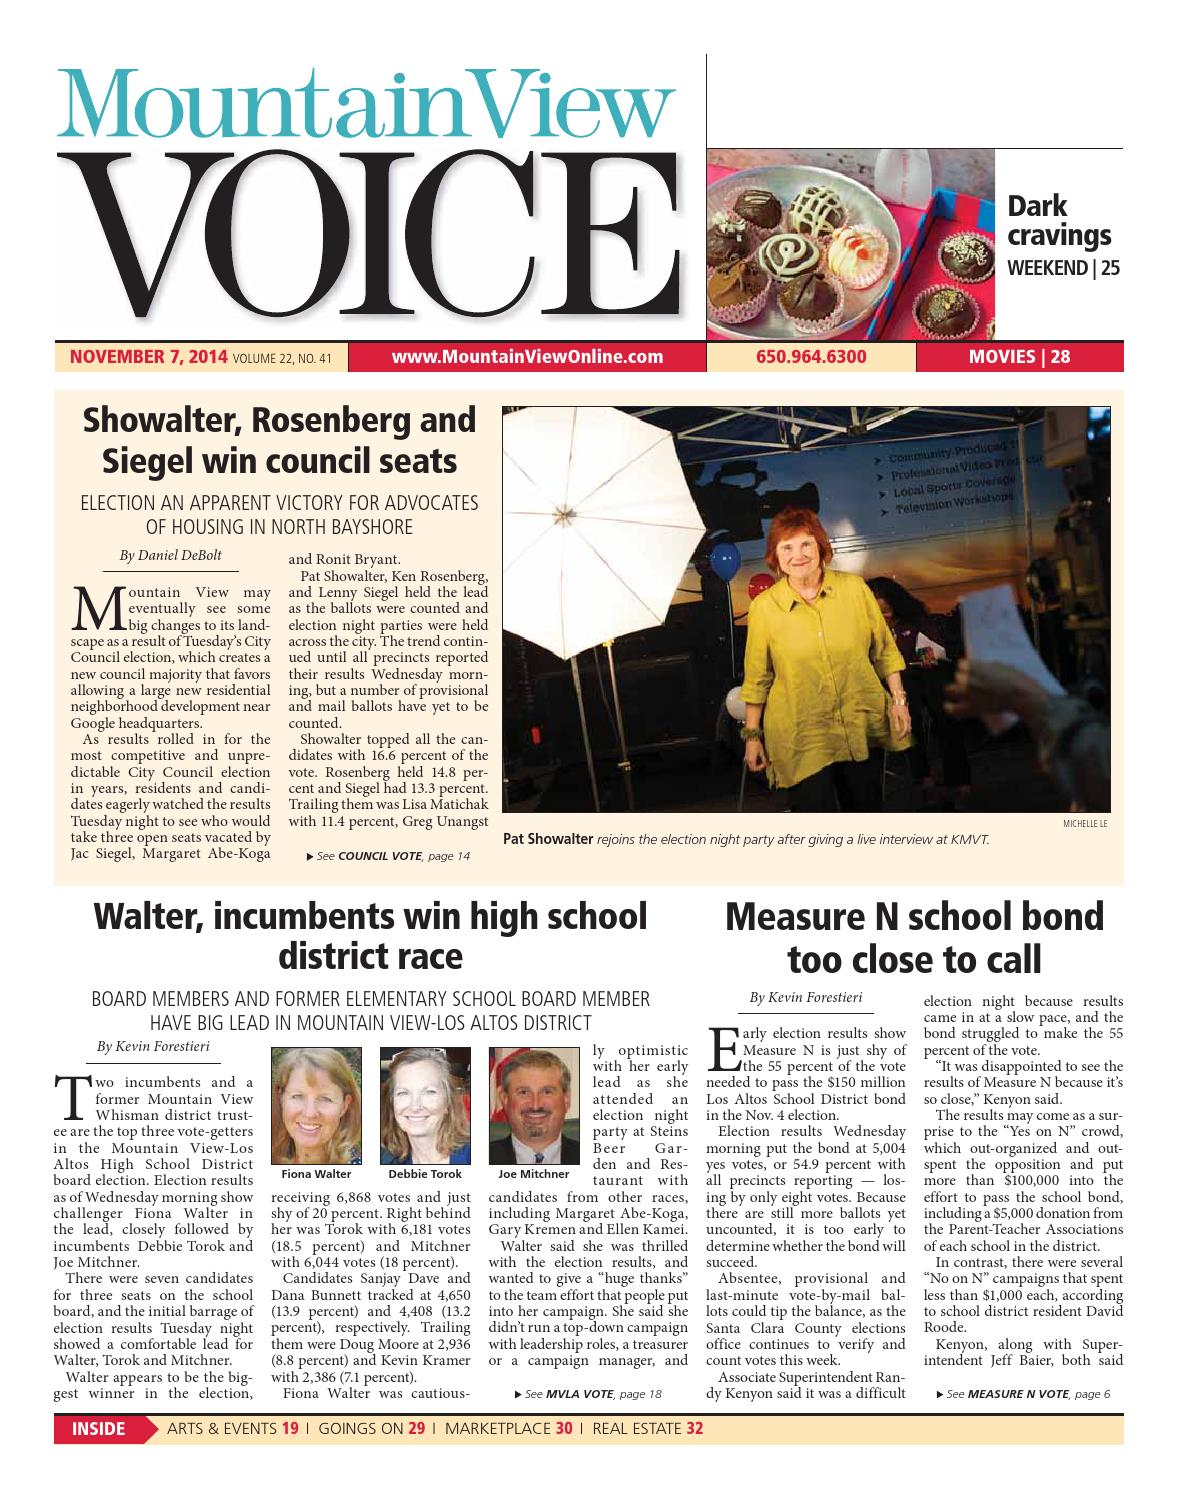 Mountain View Voice November 7, 2014 by Mountain View Voice